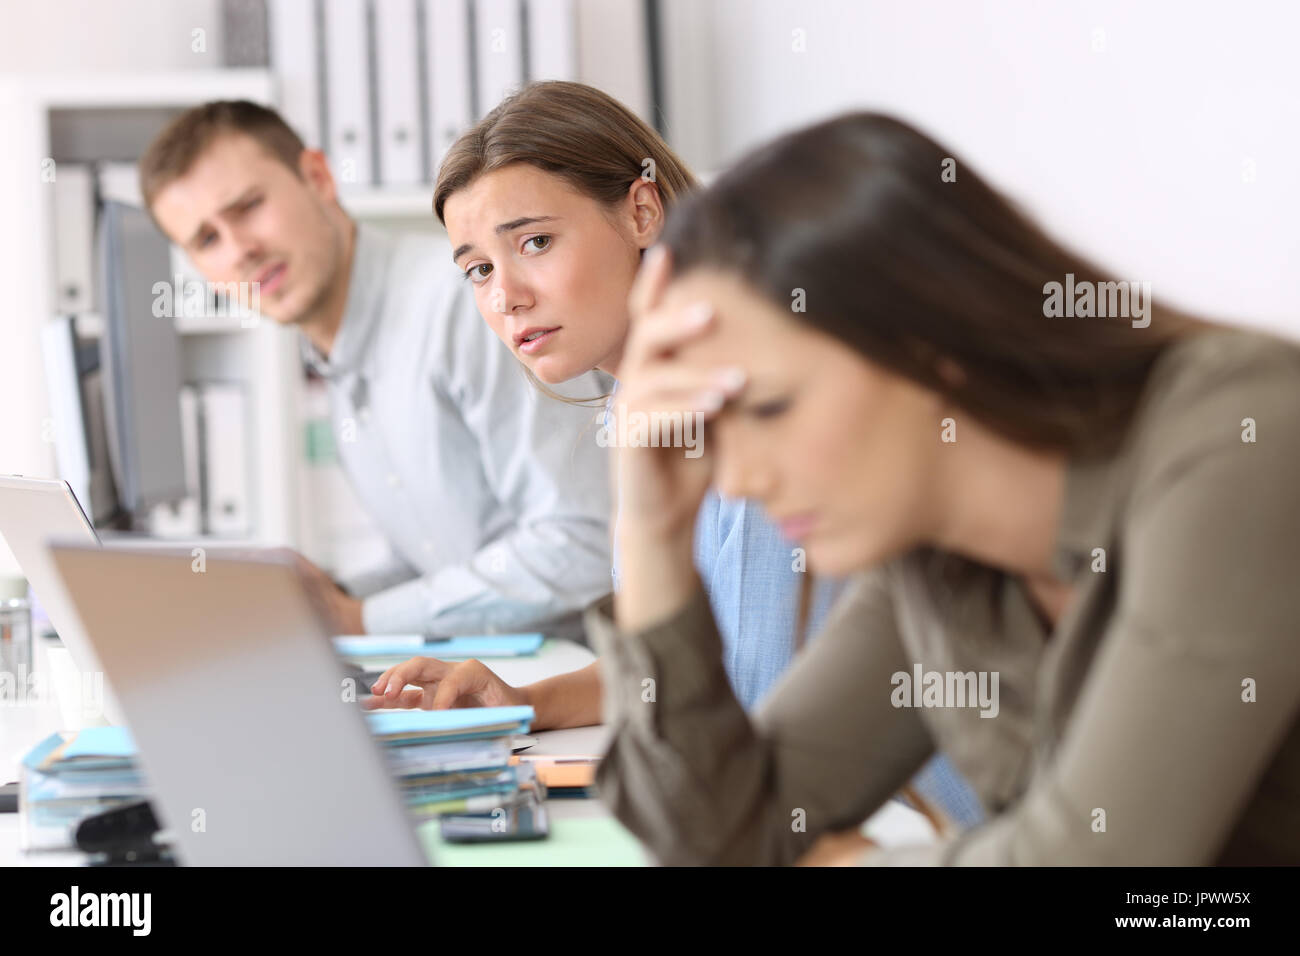 Sad workers looking at a frustrated colleague who is reading bad news on line at office - Stock Image